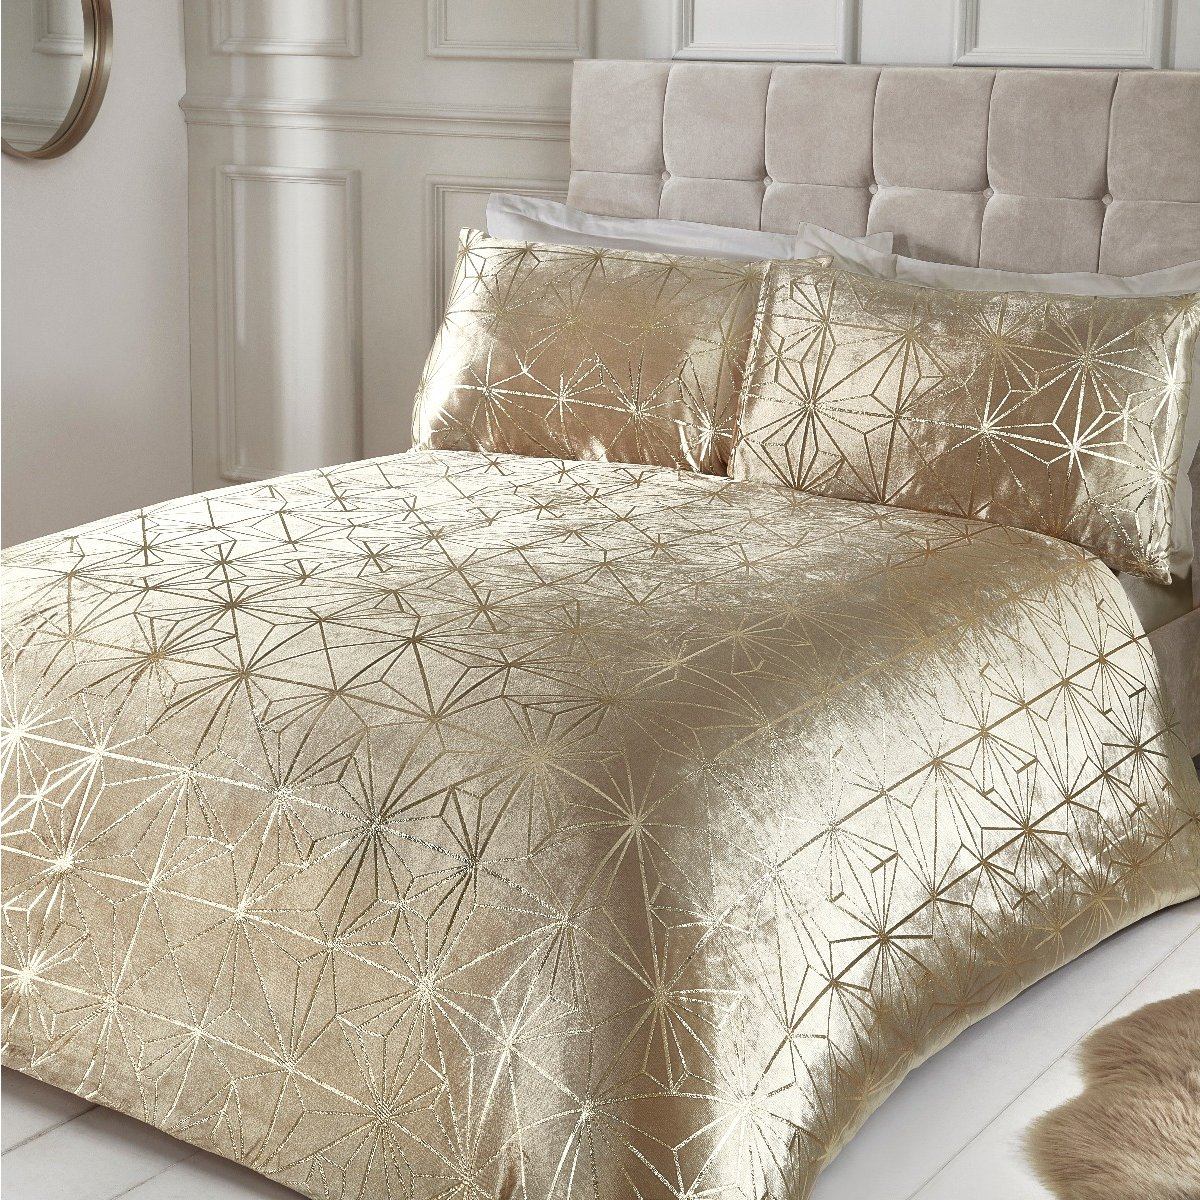 Foil Printed Geo Crushed Gold Velvet Luxury Duvet Cover And Pillowcase Set